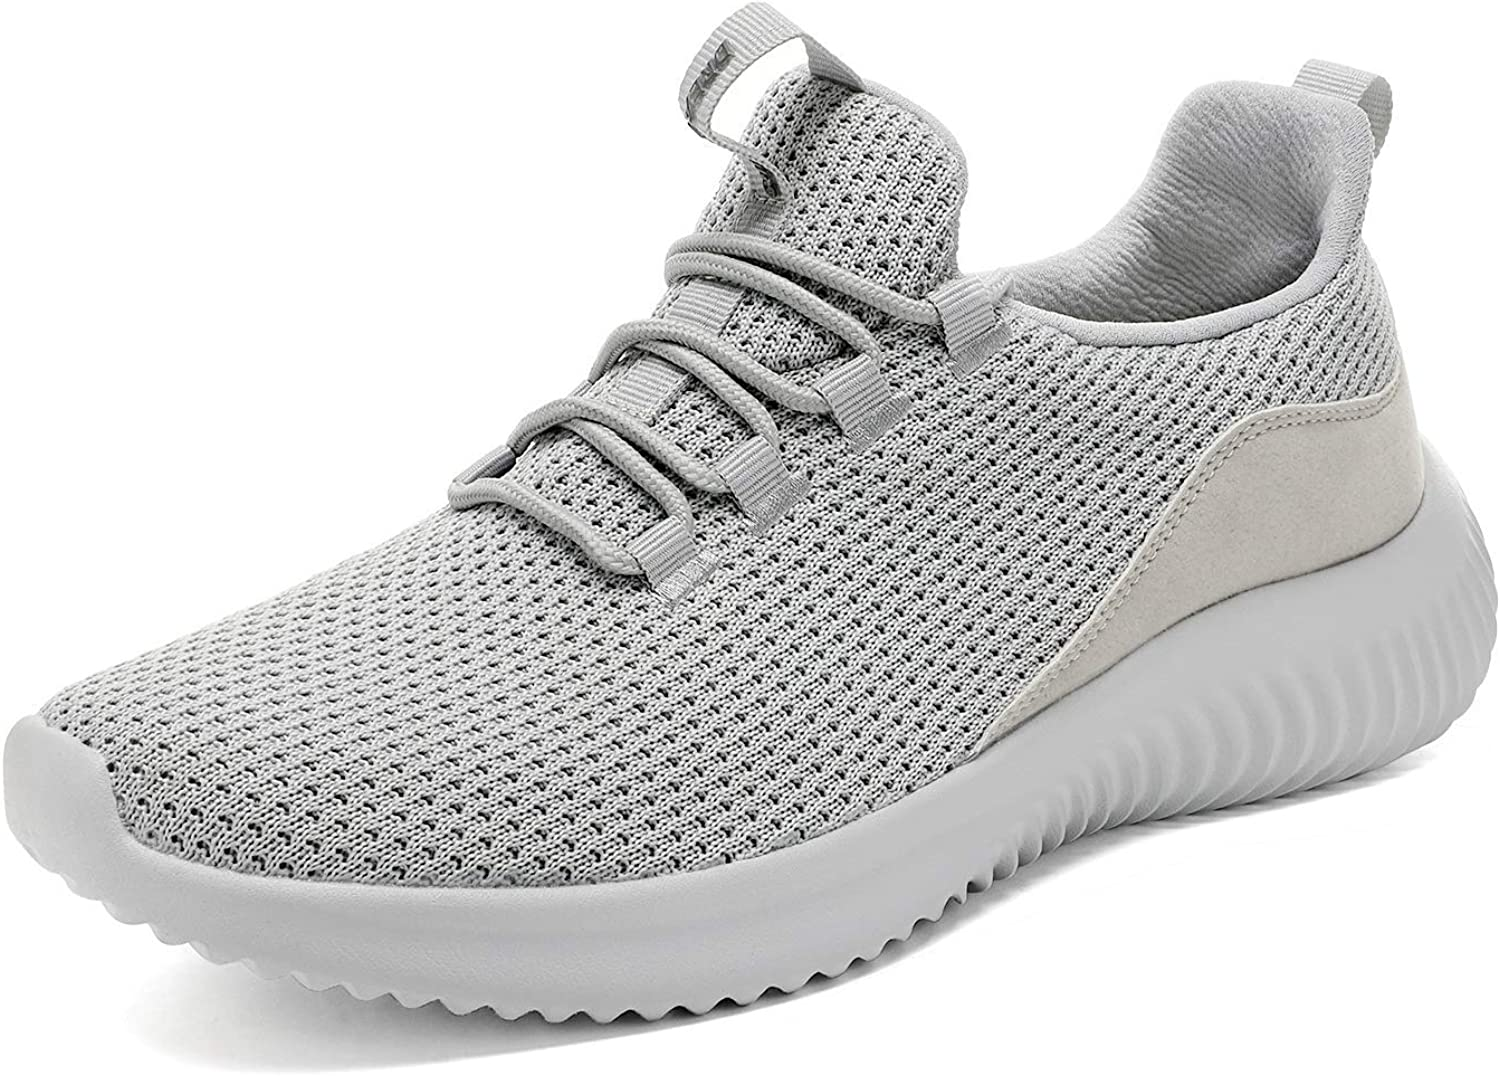 DREAM PAIRS Men s Mesh Running Shoes Lightweight Breathable Sneakers